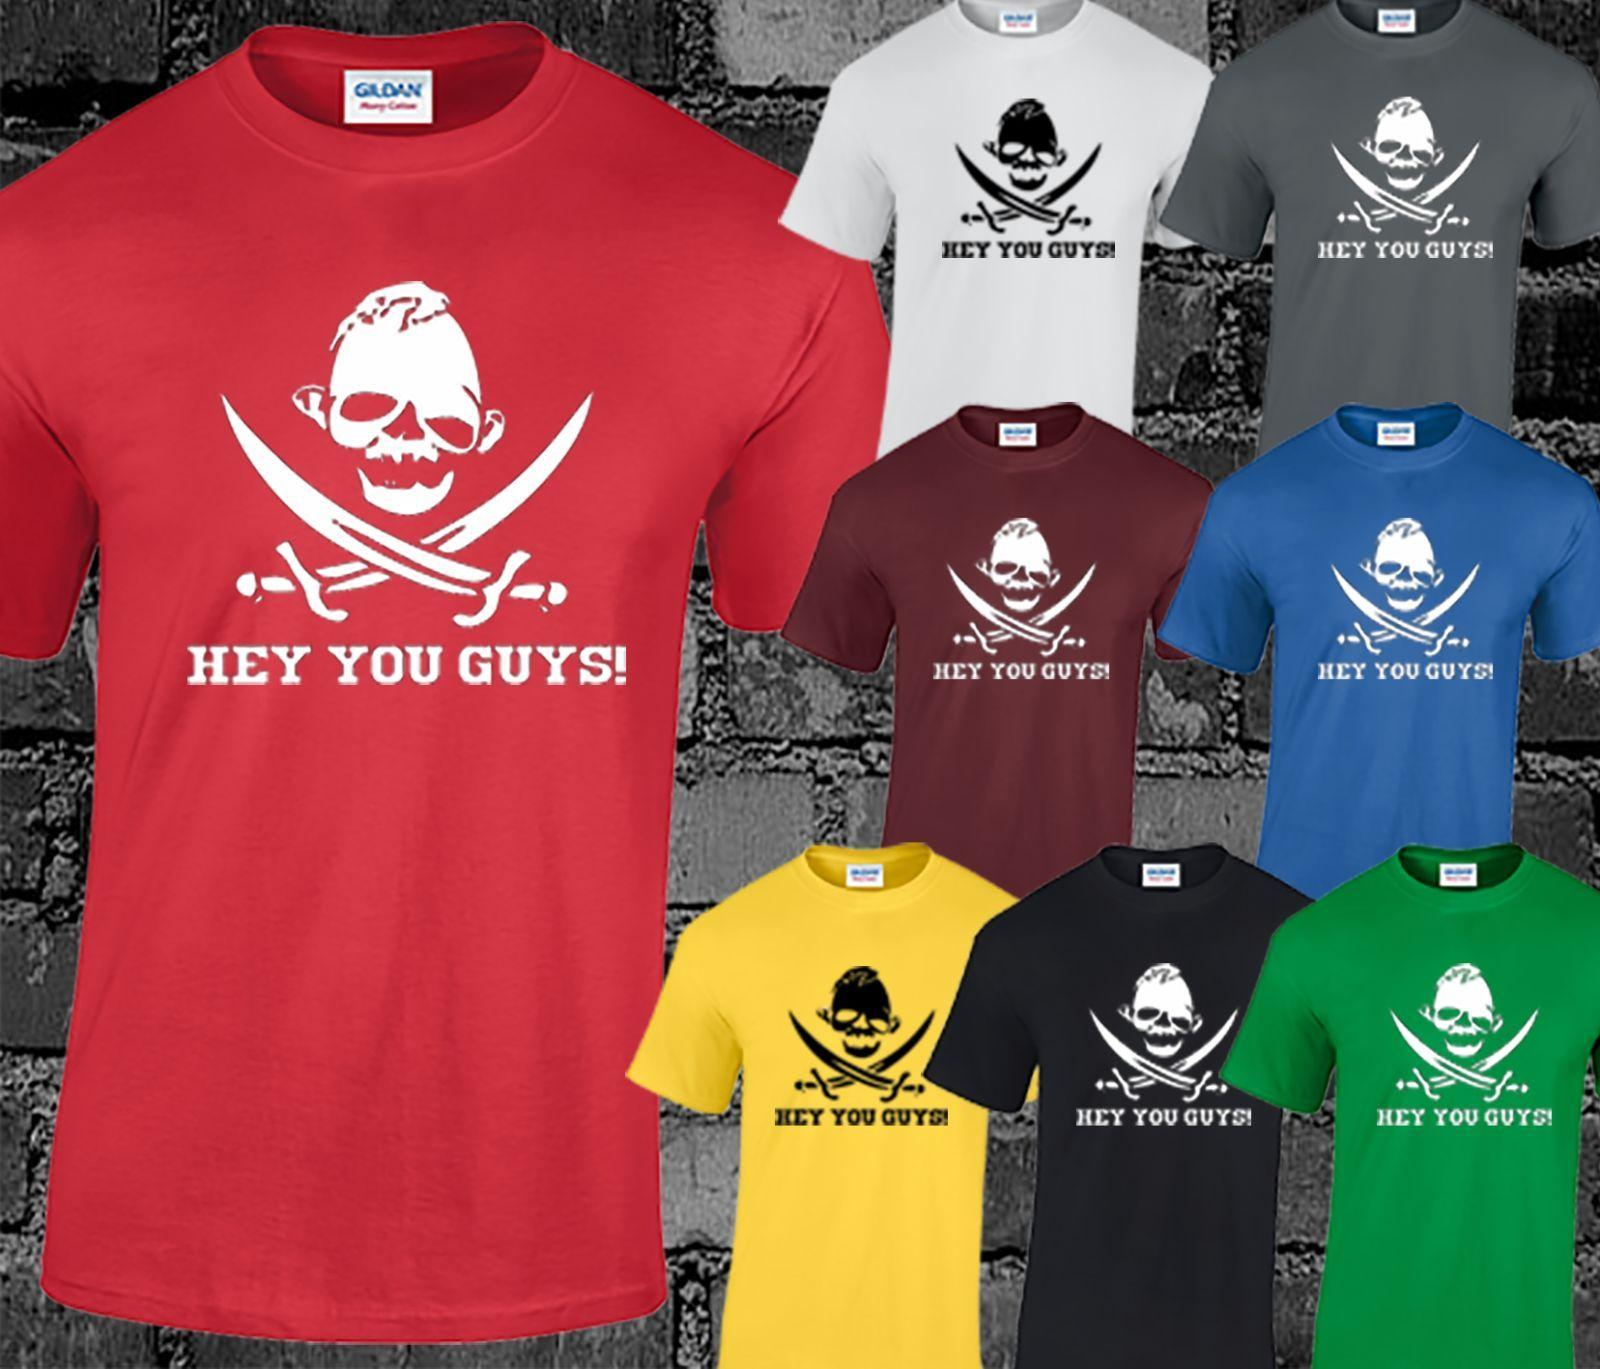 3453f5d17 Hey You Guys Mens T Shirt Goonies Movie Retro Film Quote Funny Gift Present  Cool Casual Pride T Shirt Men Unisex New Fashion T Shirt Sale Cool Shirt  Designs ...